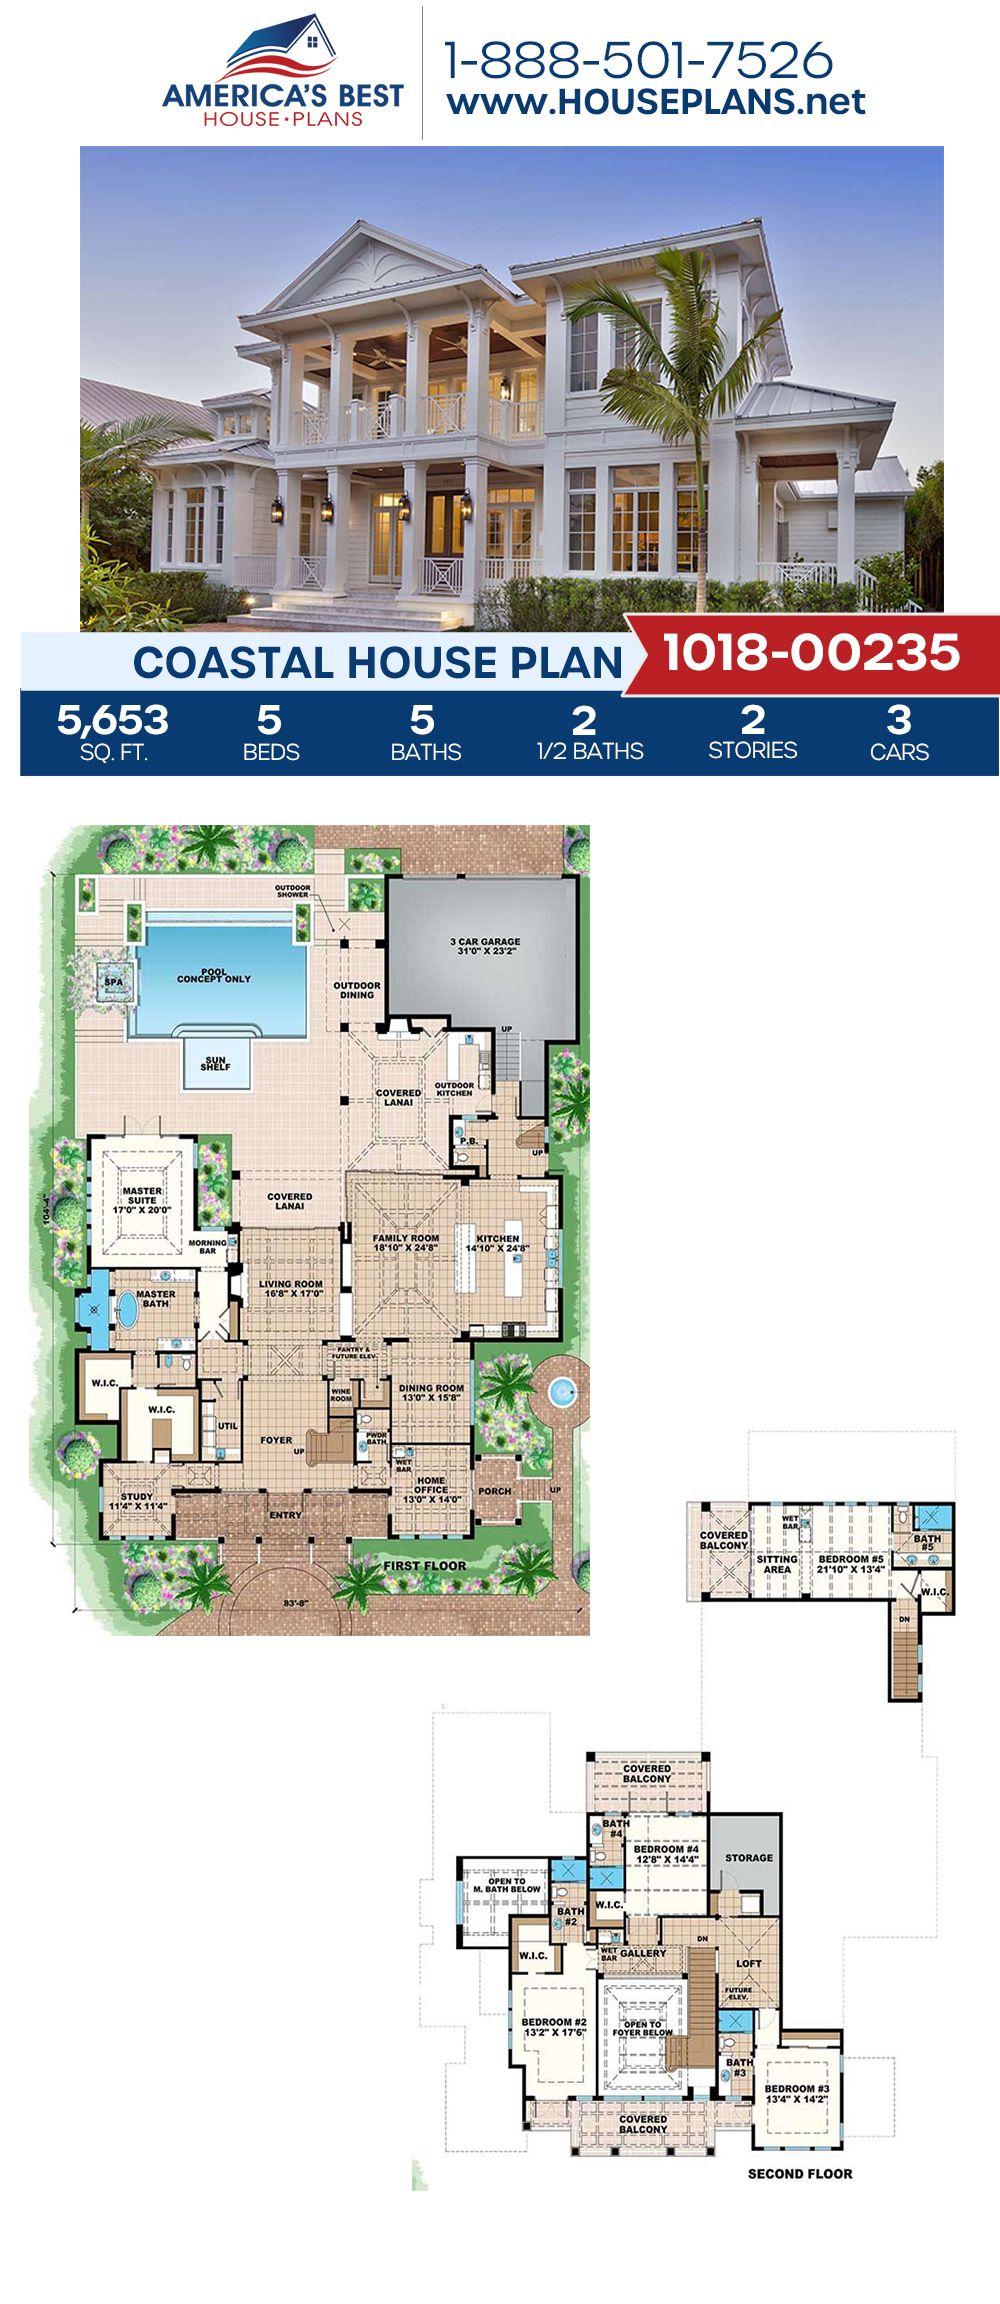 House Plan 1018 00235 Coastal Plan 5 653 Square Feet 5 Bedrooms 6 Bathrooms Coastal House Plans Beach House Floor Plans Beach House Flooring